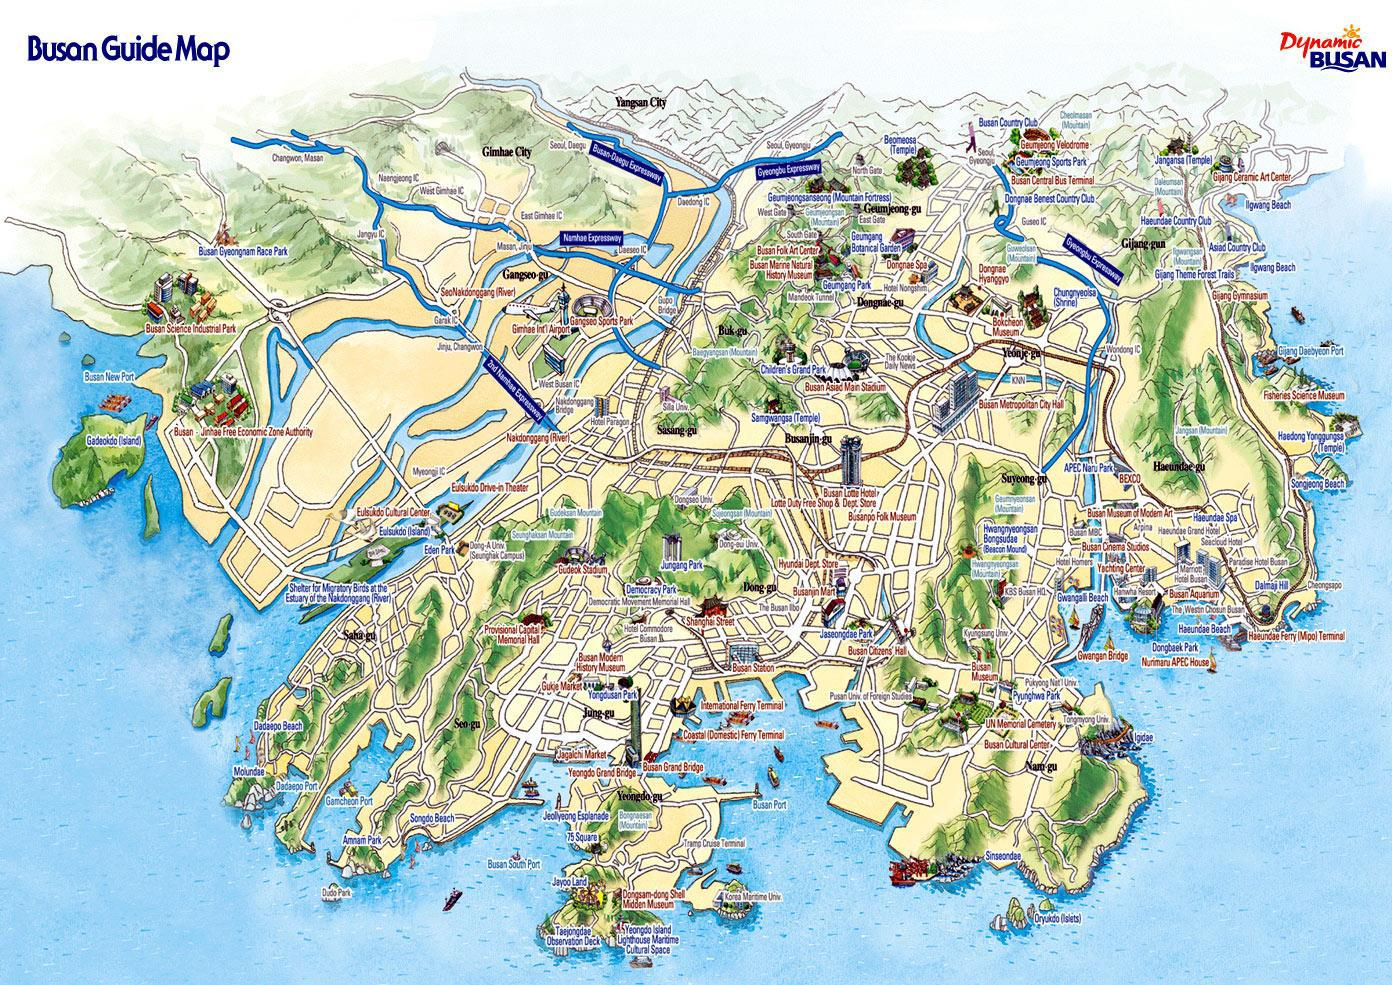 Maps of Korea and Korean Cities | Koreabridge Google Map Busan Korea on joseon korea map, gwangju korea map, korea's tumen river map, hallasan korea map, hwaseong korea map, bucheon korea map, pyeongtaek korea map, osan korea map, daegu korea map, sejong city korea map, republic of korea war map, lotte world korea map, panmunjom korea map, ulsan korea map, kyoto korea map, incheon korea map, gimcheon korea map, usfk korea map, seoul map, pusan map,